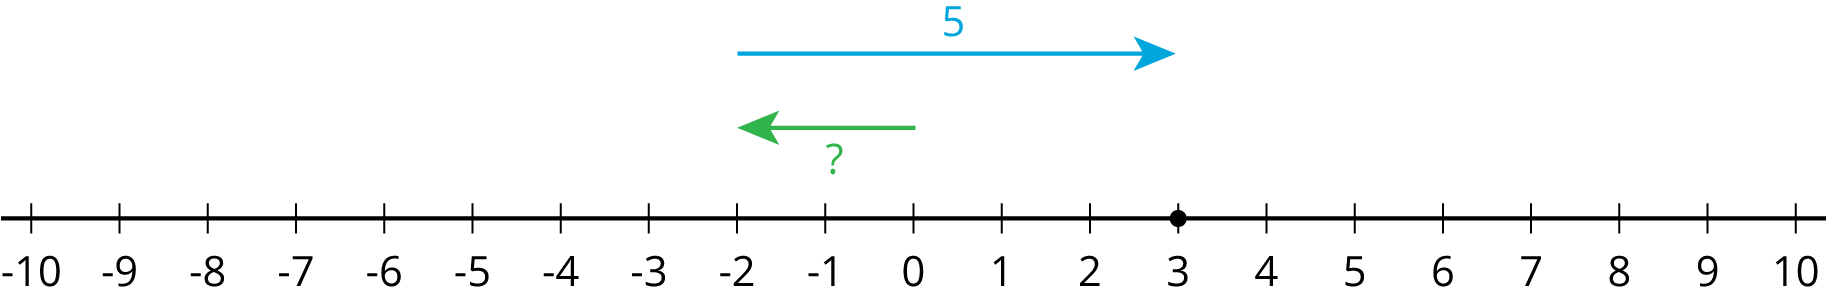 """A number line with the numbers negative 10 through 10, indicated. An arrow starts at 0, points to the left, ends at negative 2, and is labeled with a question mark. A second arrow starts at negative 2, points to the right, ends at 3, and is labeled """"5"""". There is a solid dot indicated at 3."""